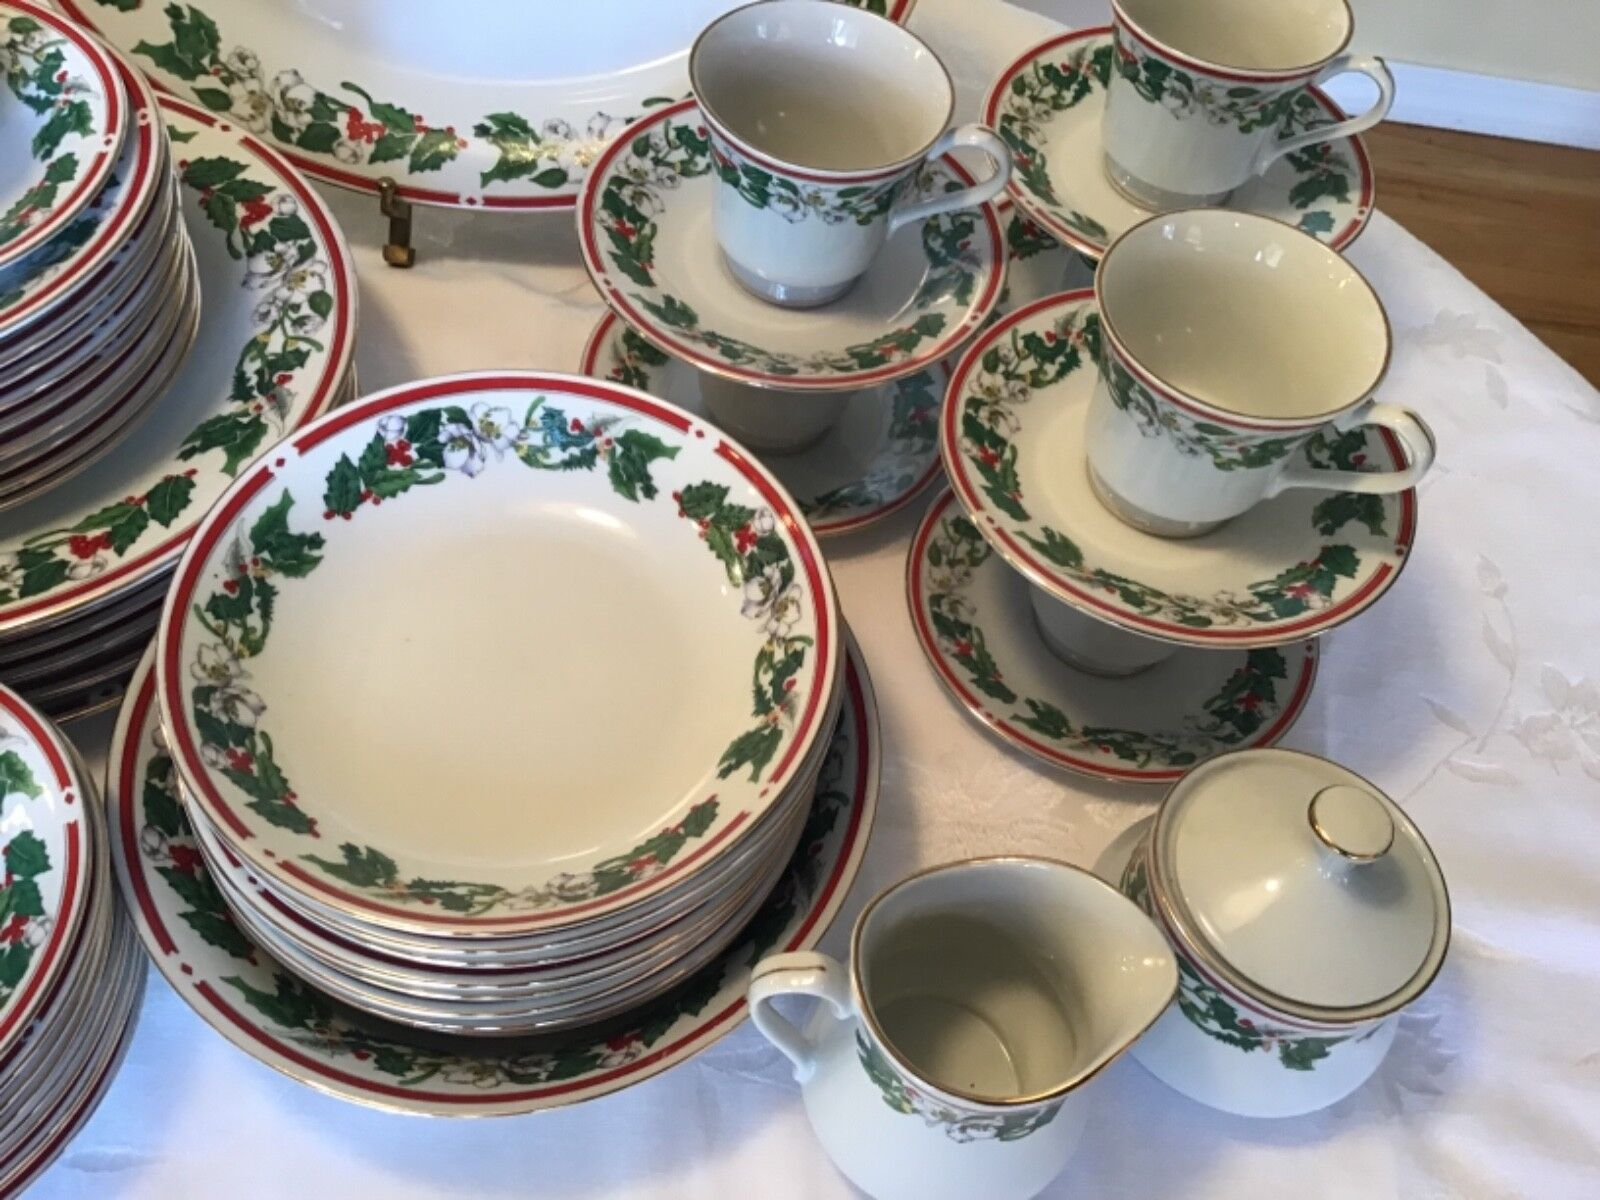 St. Maria 51 Piece Set 6 Place Sets Serving Dishes Christmas Lynn s China Denver - $149.99